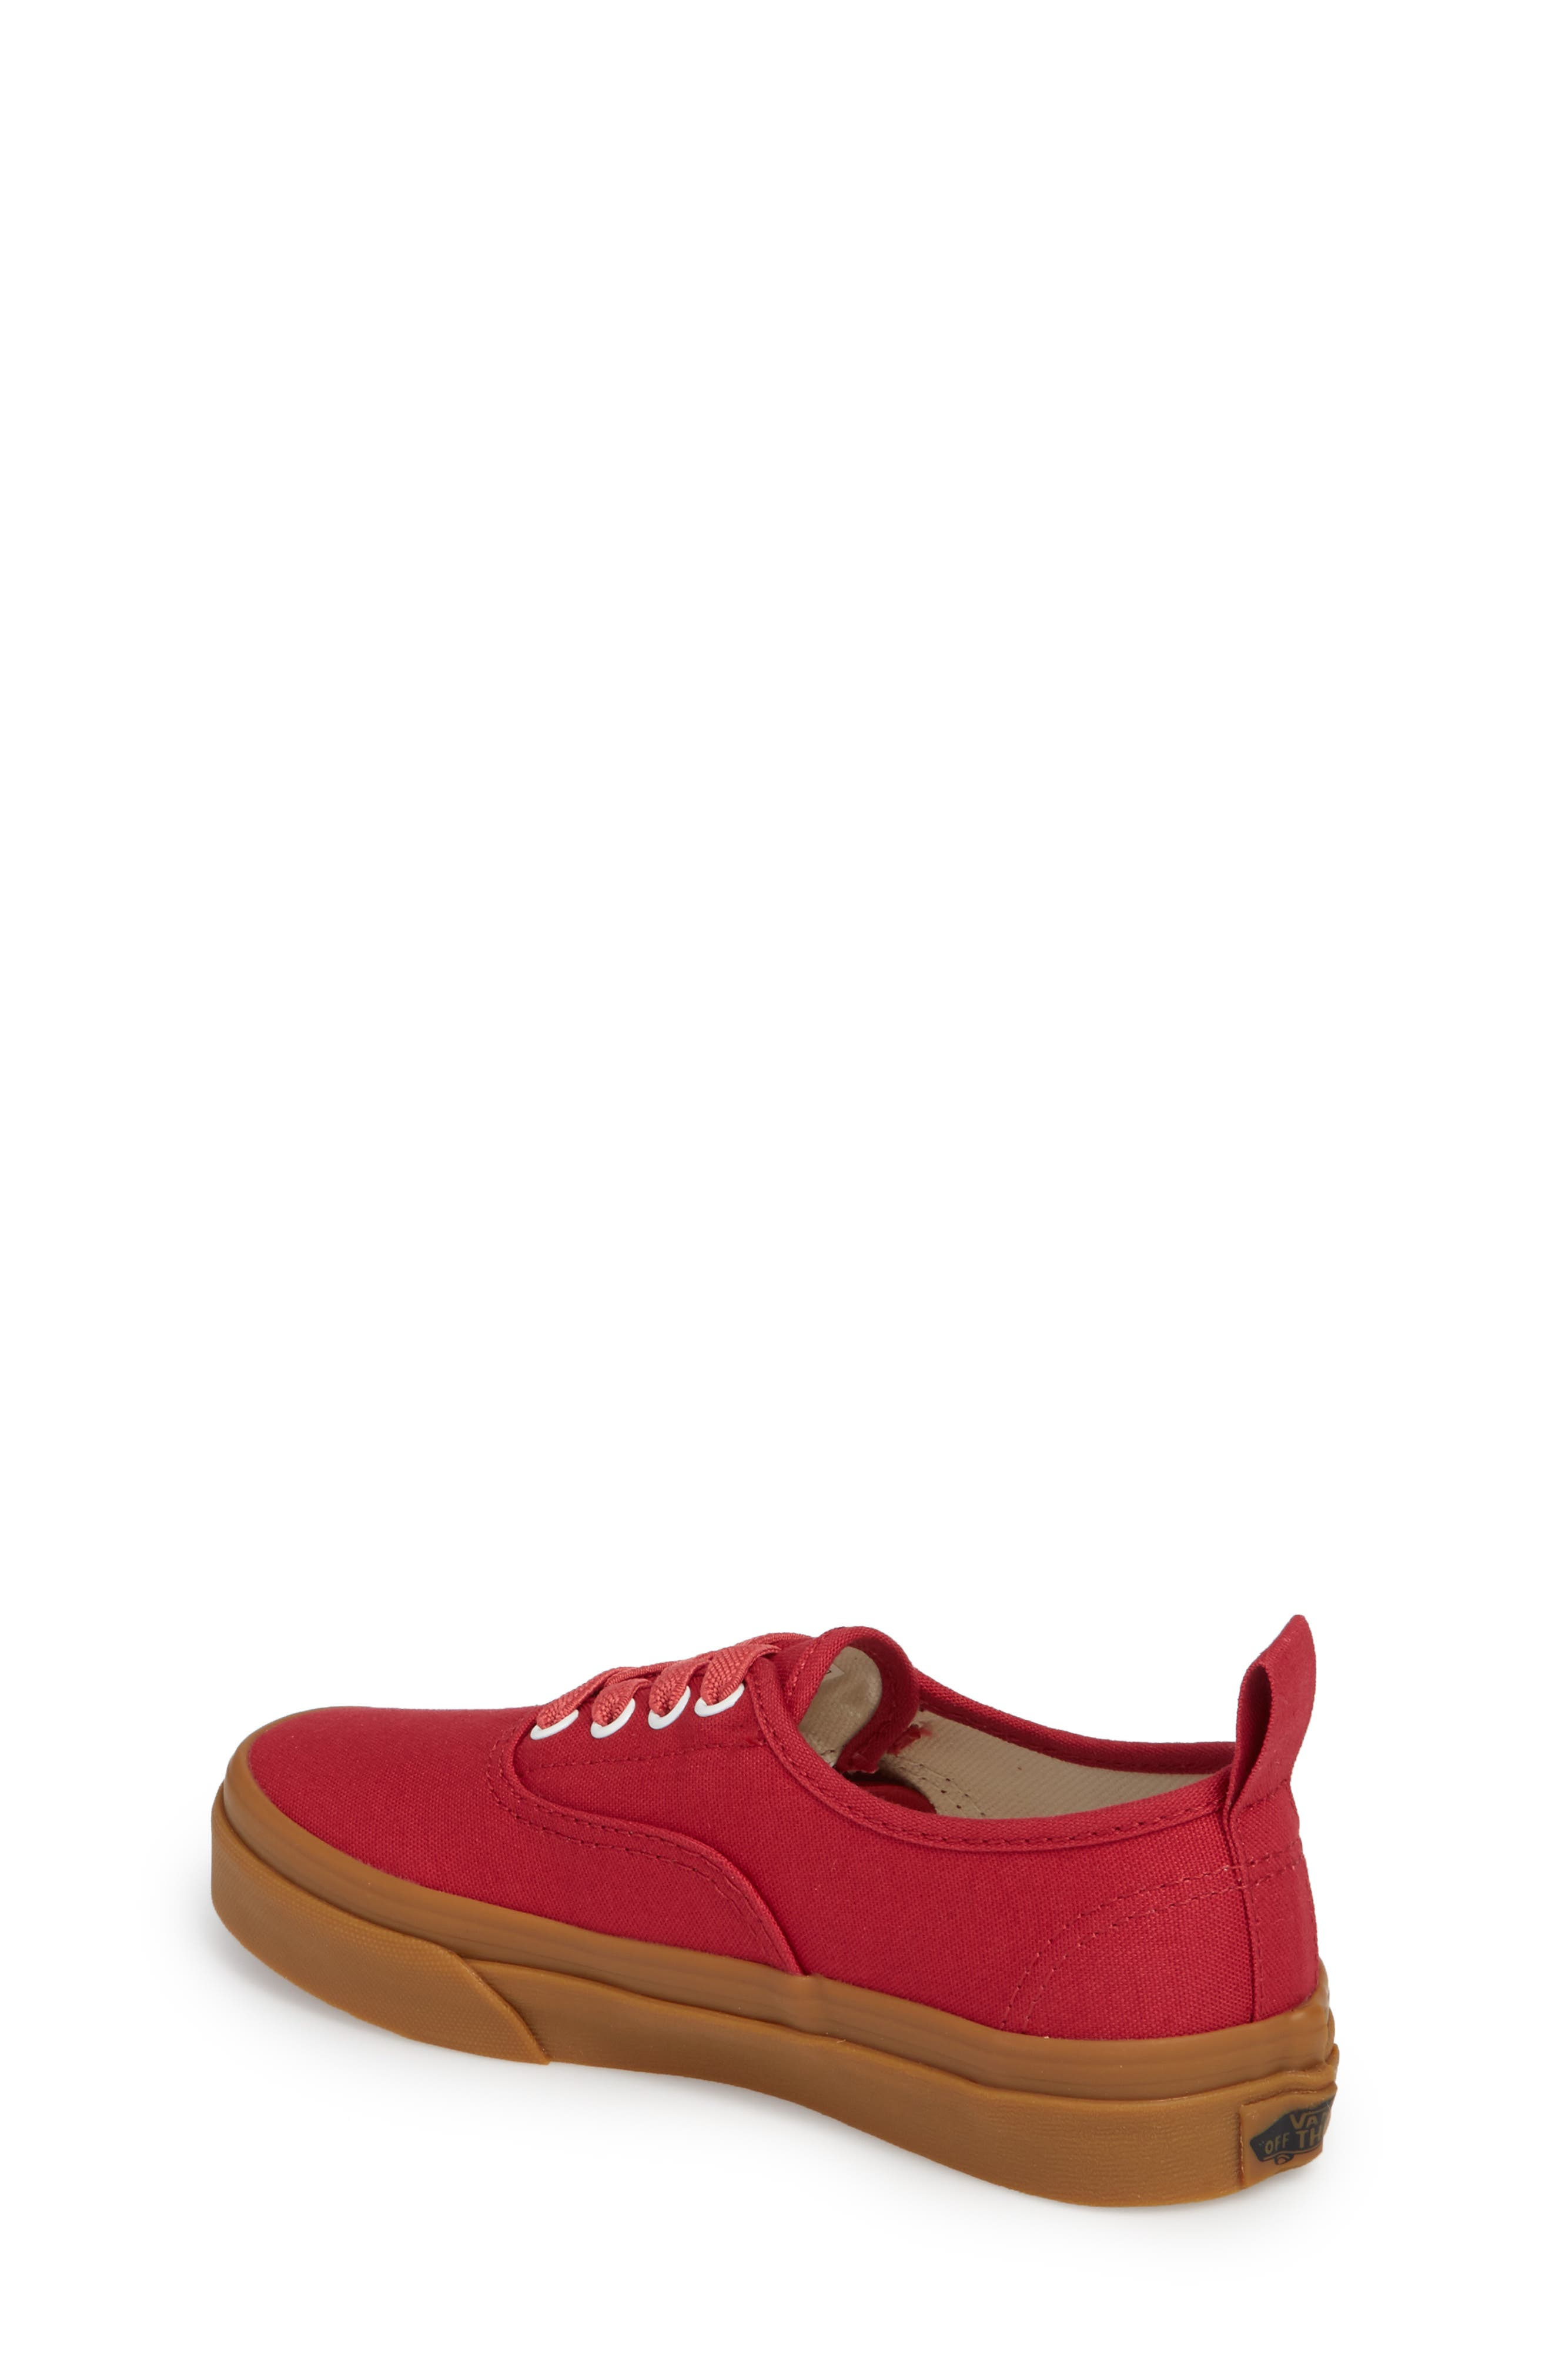 Alternate Image 2  - Vans Authentic Sneaker (Baby, Walker, Toddler, Little Kid & Big Kid)